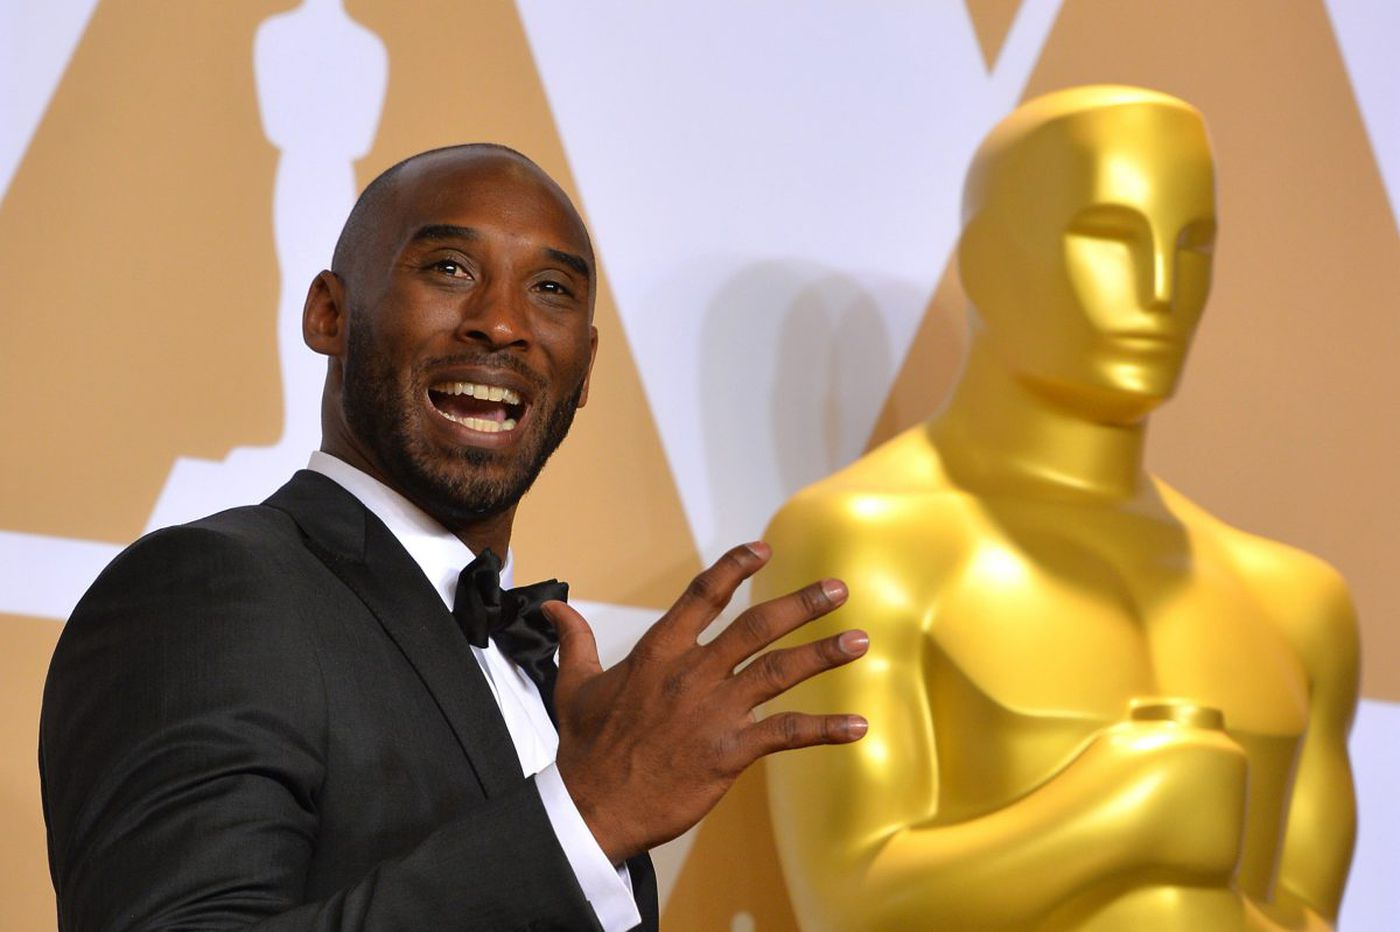 Kobe Bryant criticized for past sexual assault accusation following Oscar win